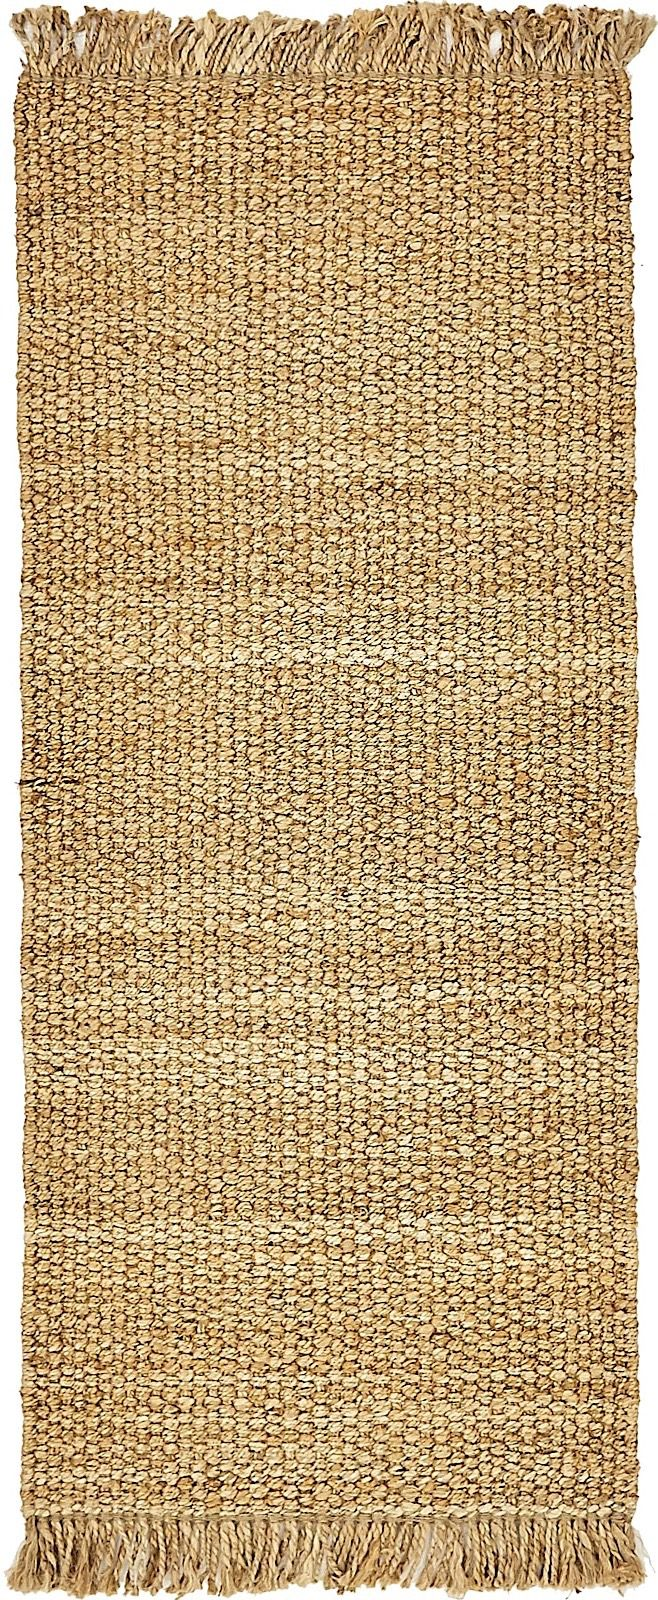 rugpal jolie braided area rug collection